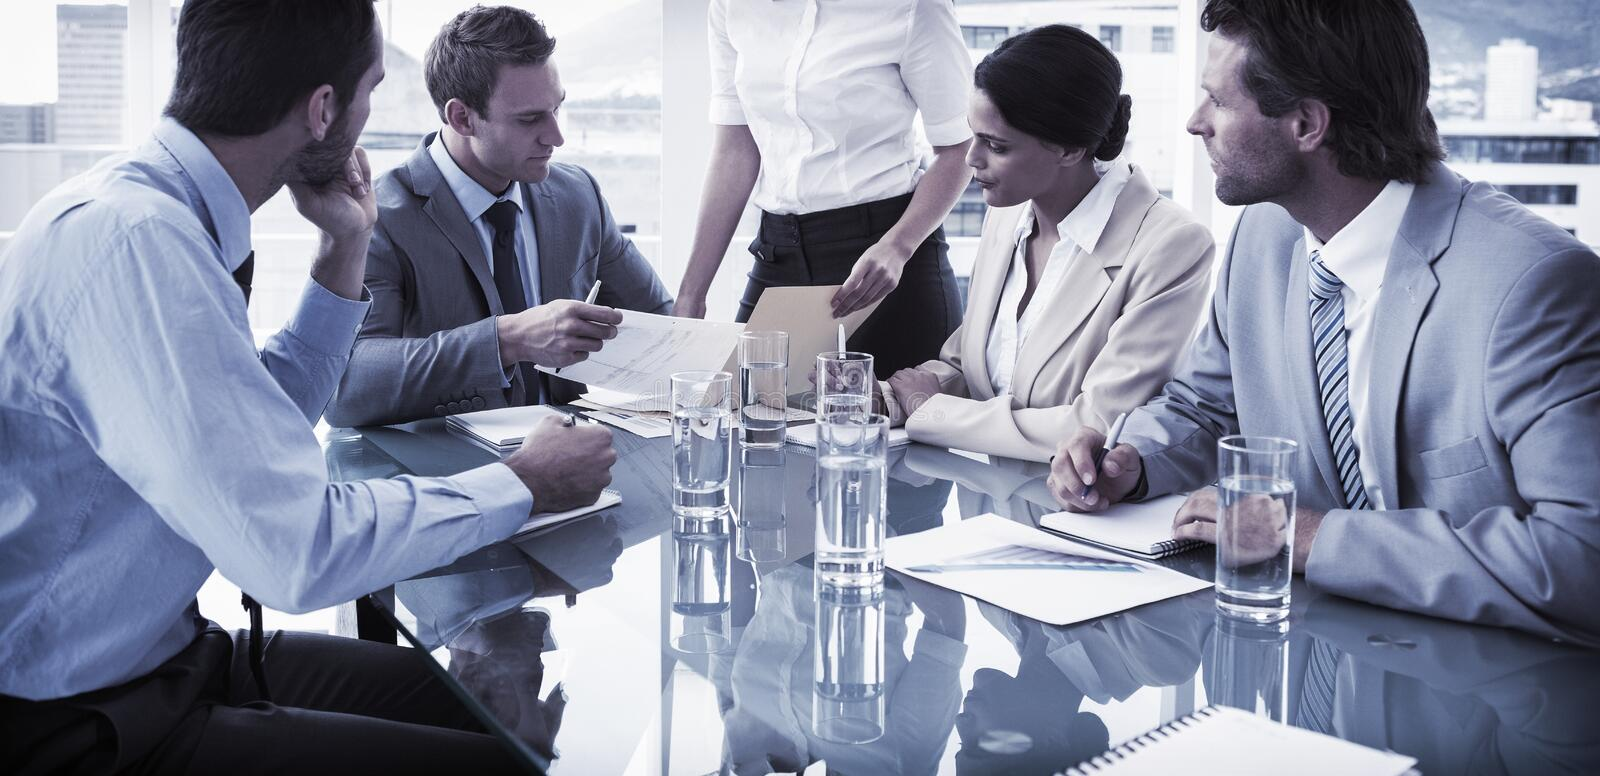 Business people in board room meeting royalty free stock photo